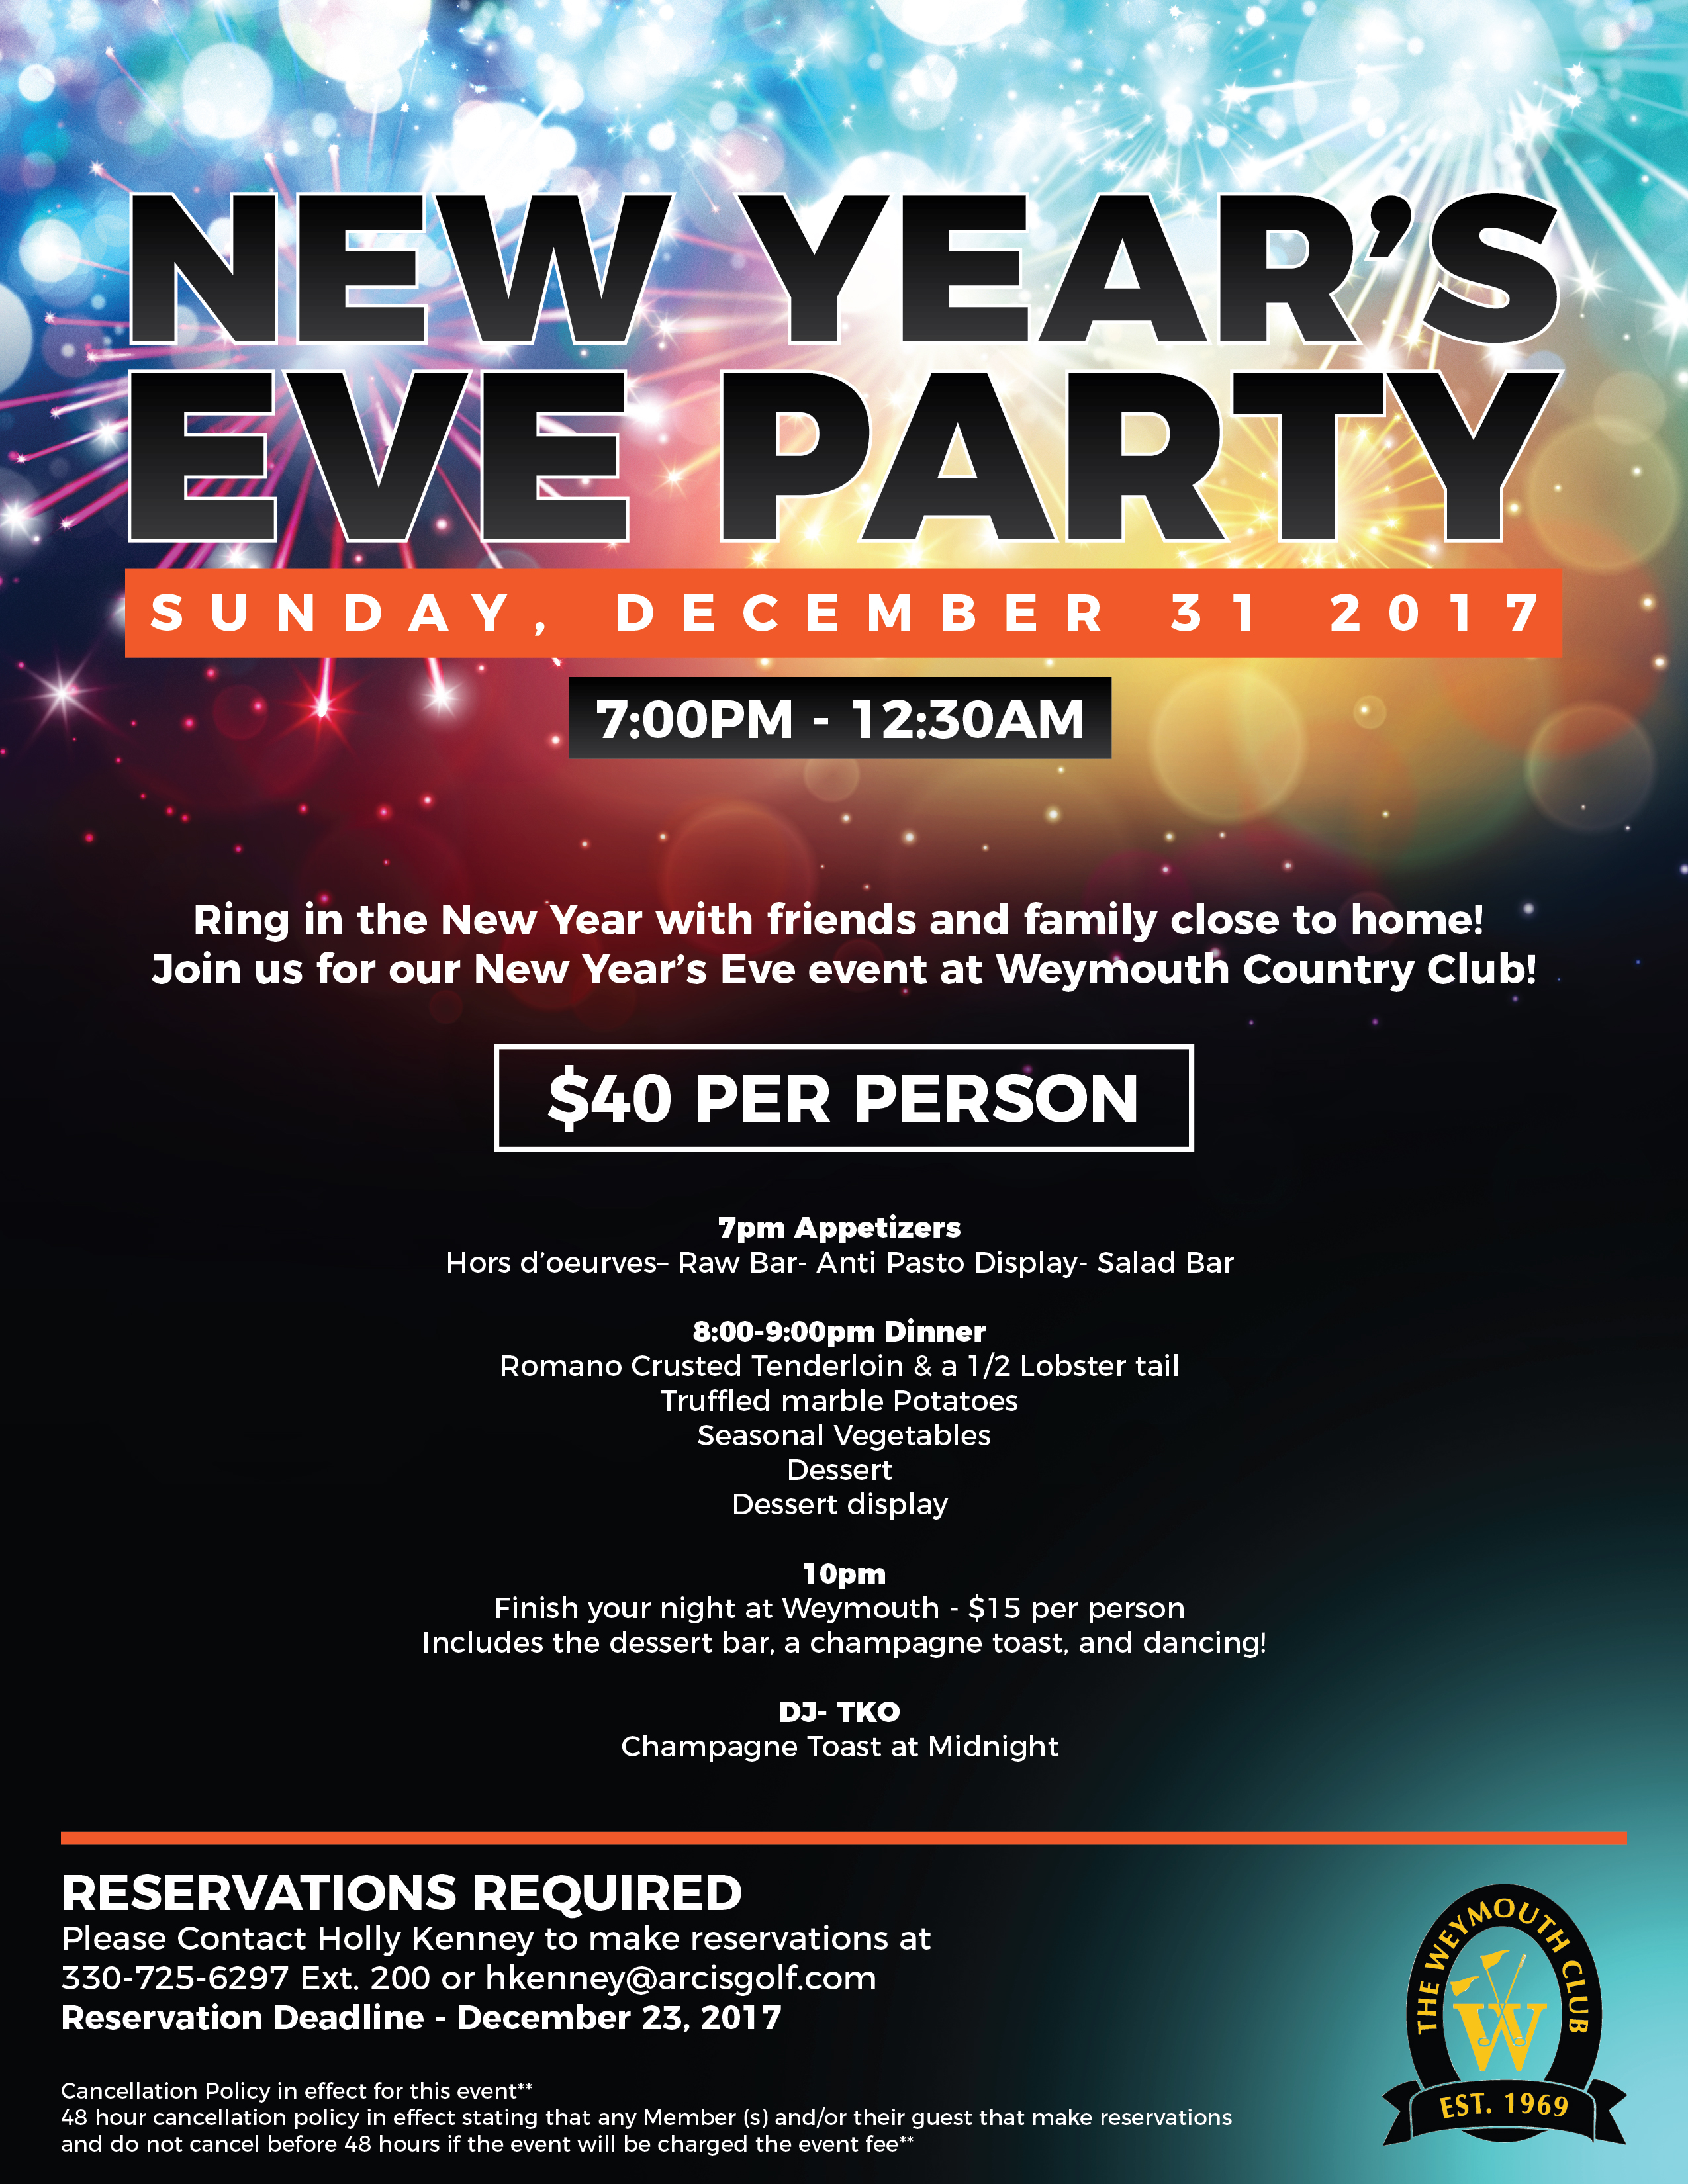 New Years Eve Bash For 2017 12 31